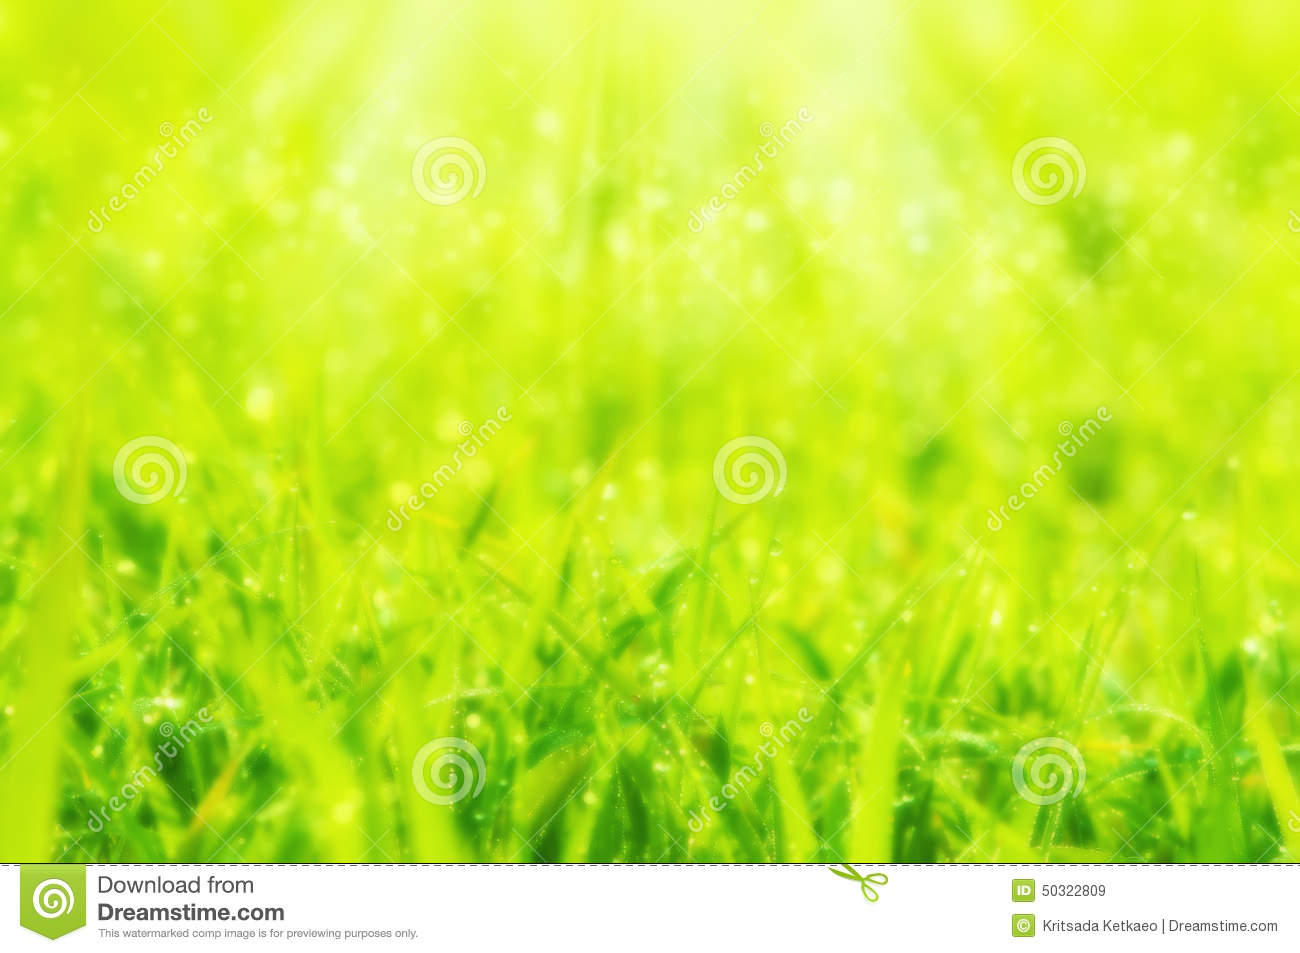 Nature Images 2mb: Blurred Dreamy Soft Focus Spring Or Summer Abstract Nature